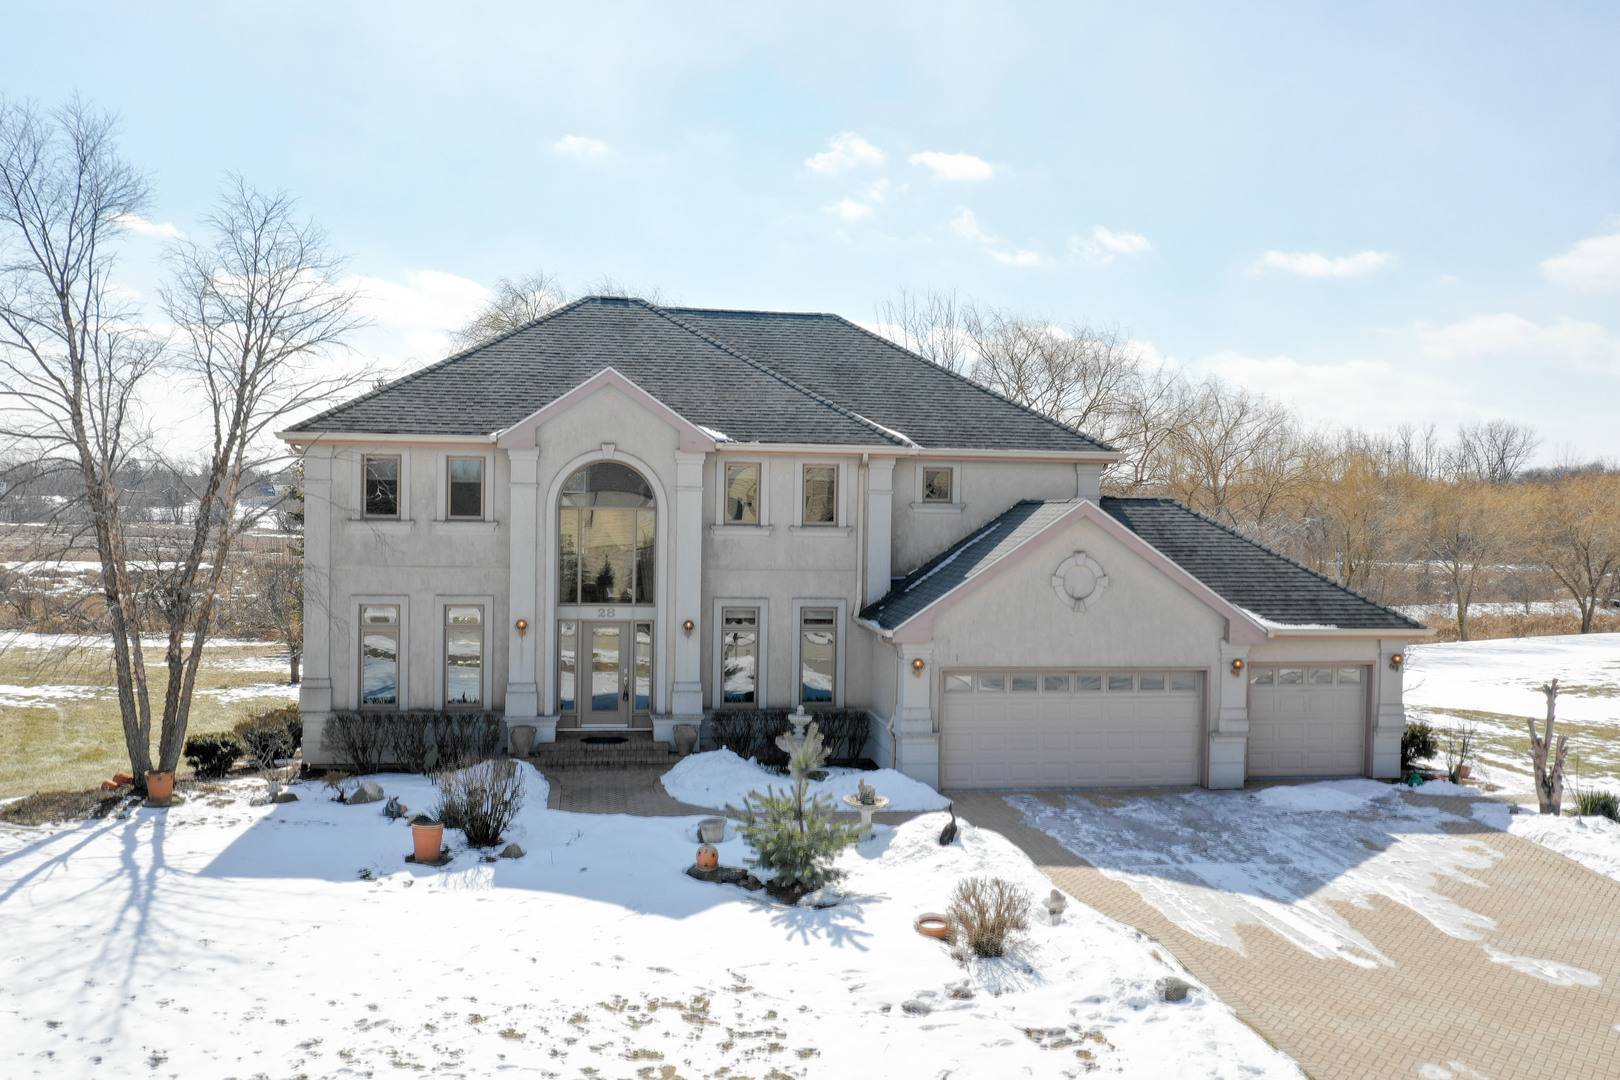 Welcome to 28 Foxtail in Hawthorn Woods. Located near the end of a quiet cul-de-sac, and overlooking